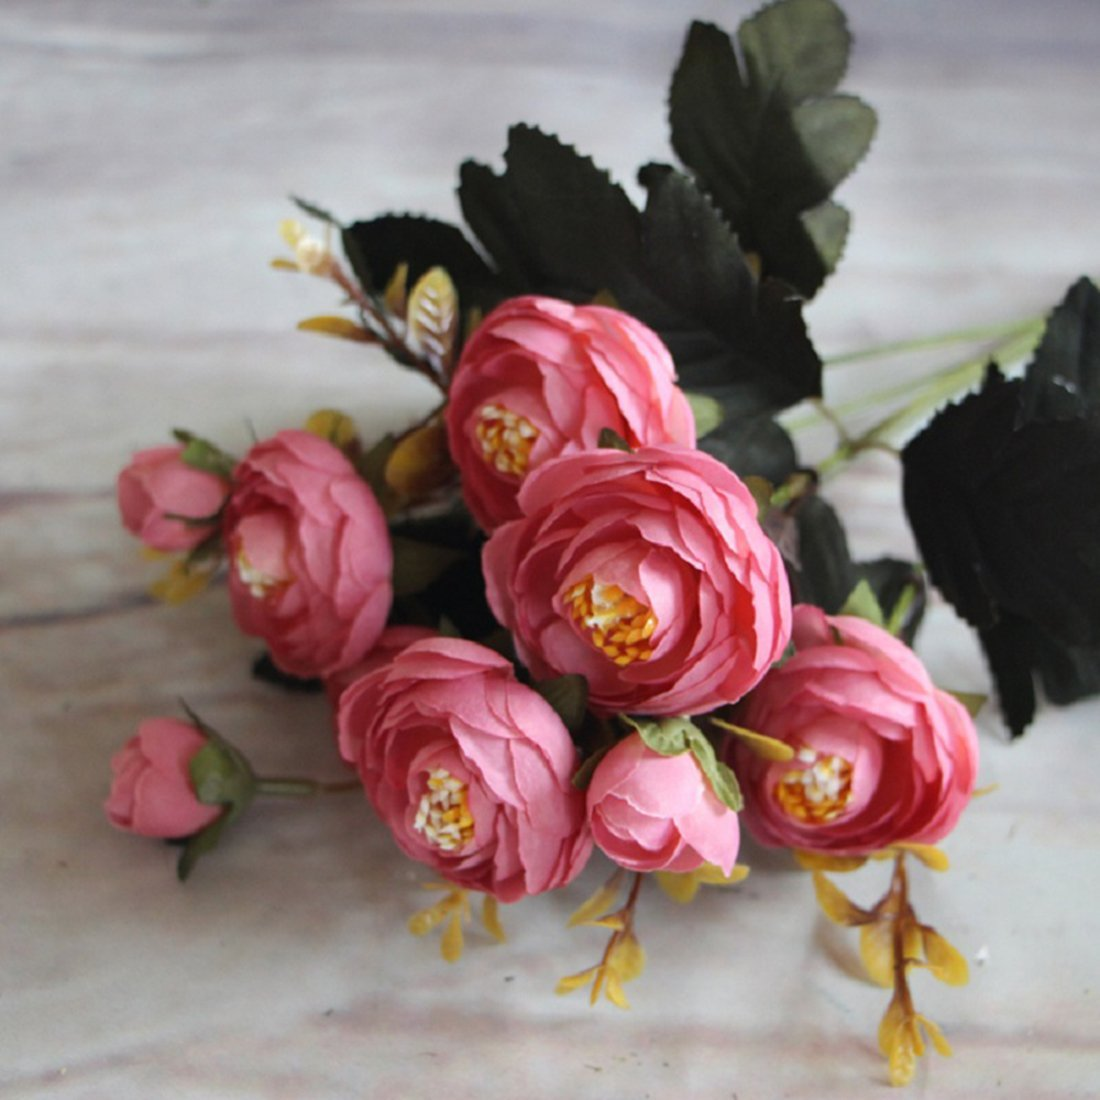 Vivid 6 Branches Autumn Artificial Fake Peony Flower Home Room Bridal Hydrangea Decor Real Touch ASTrade